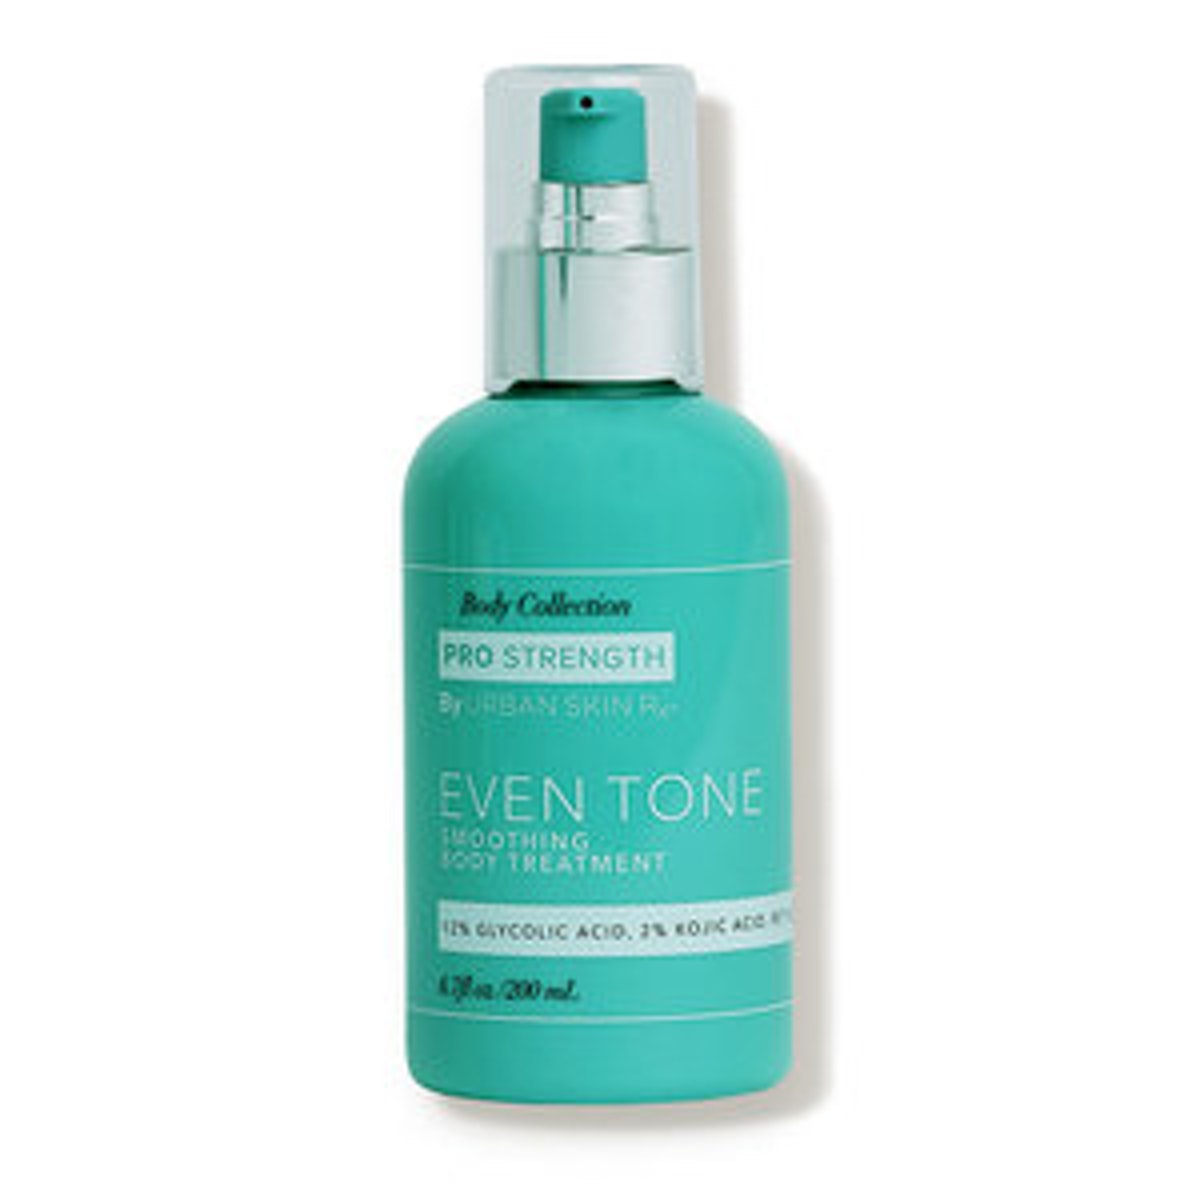 Even Tone Smoothing Body Treatment